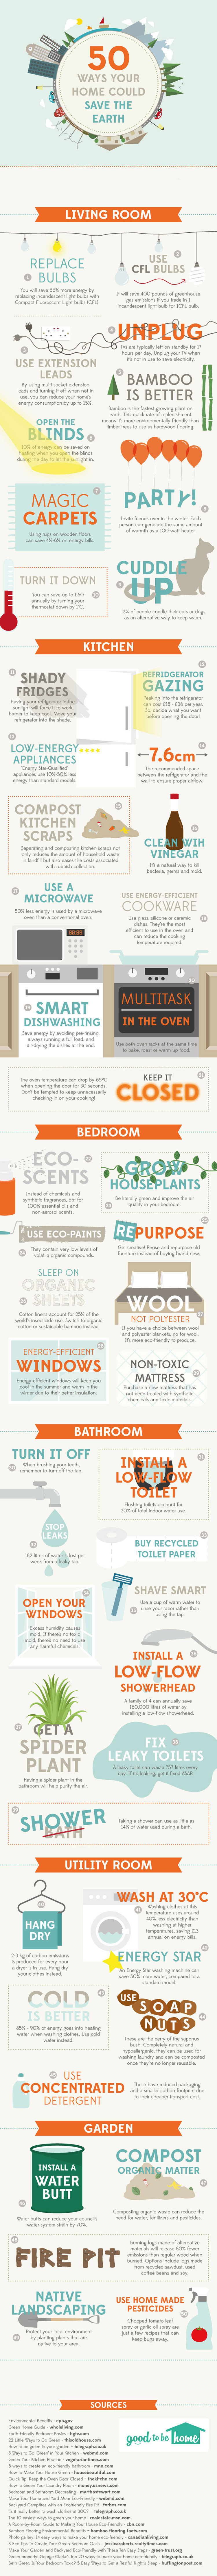 2_50 simple ways to save the planet